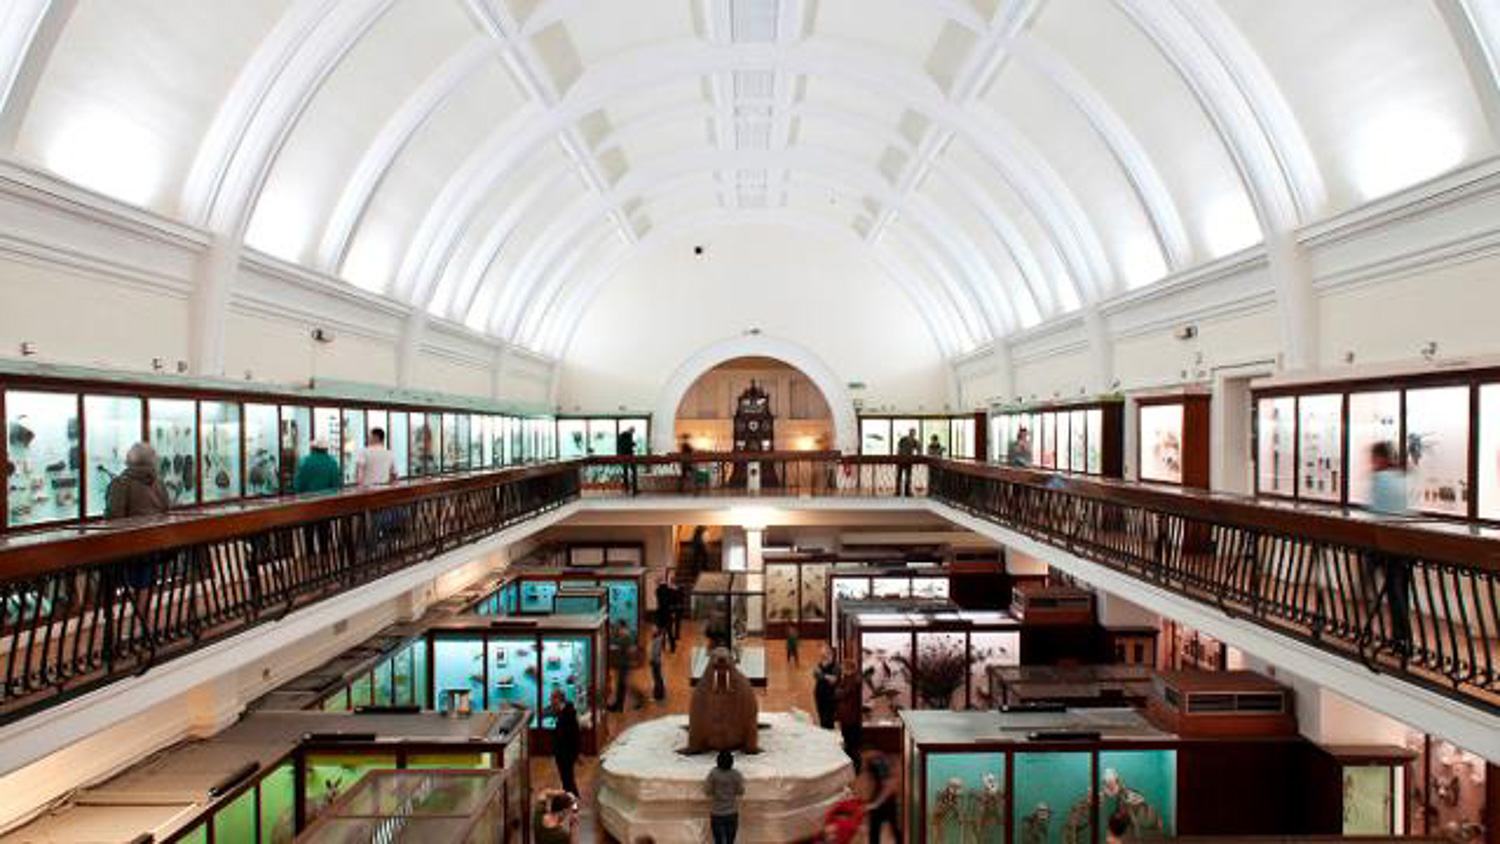 The Horniman Museum and Gardens is one of the best London museums to visit with kids!